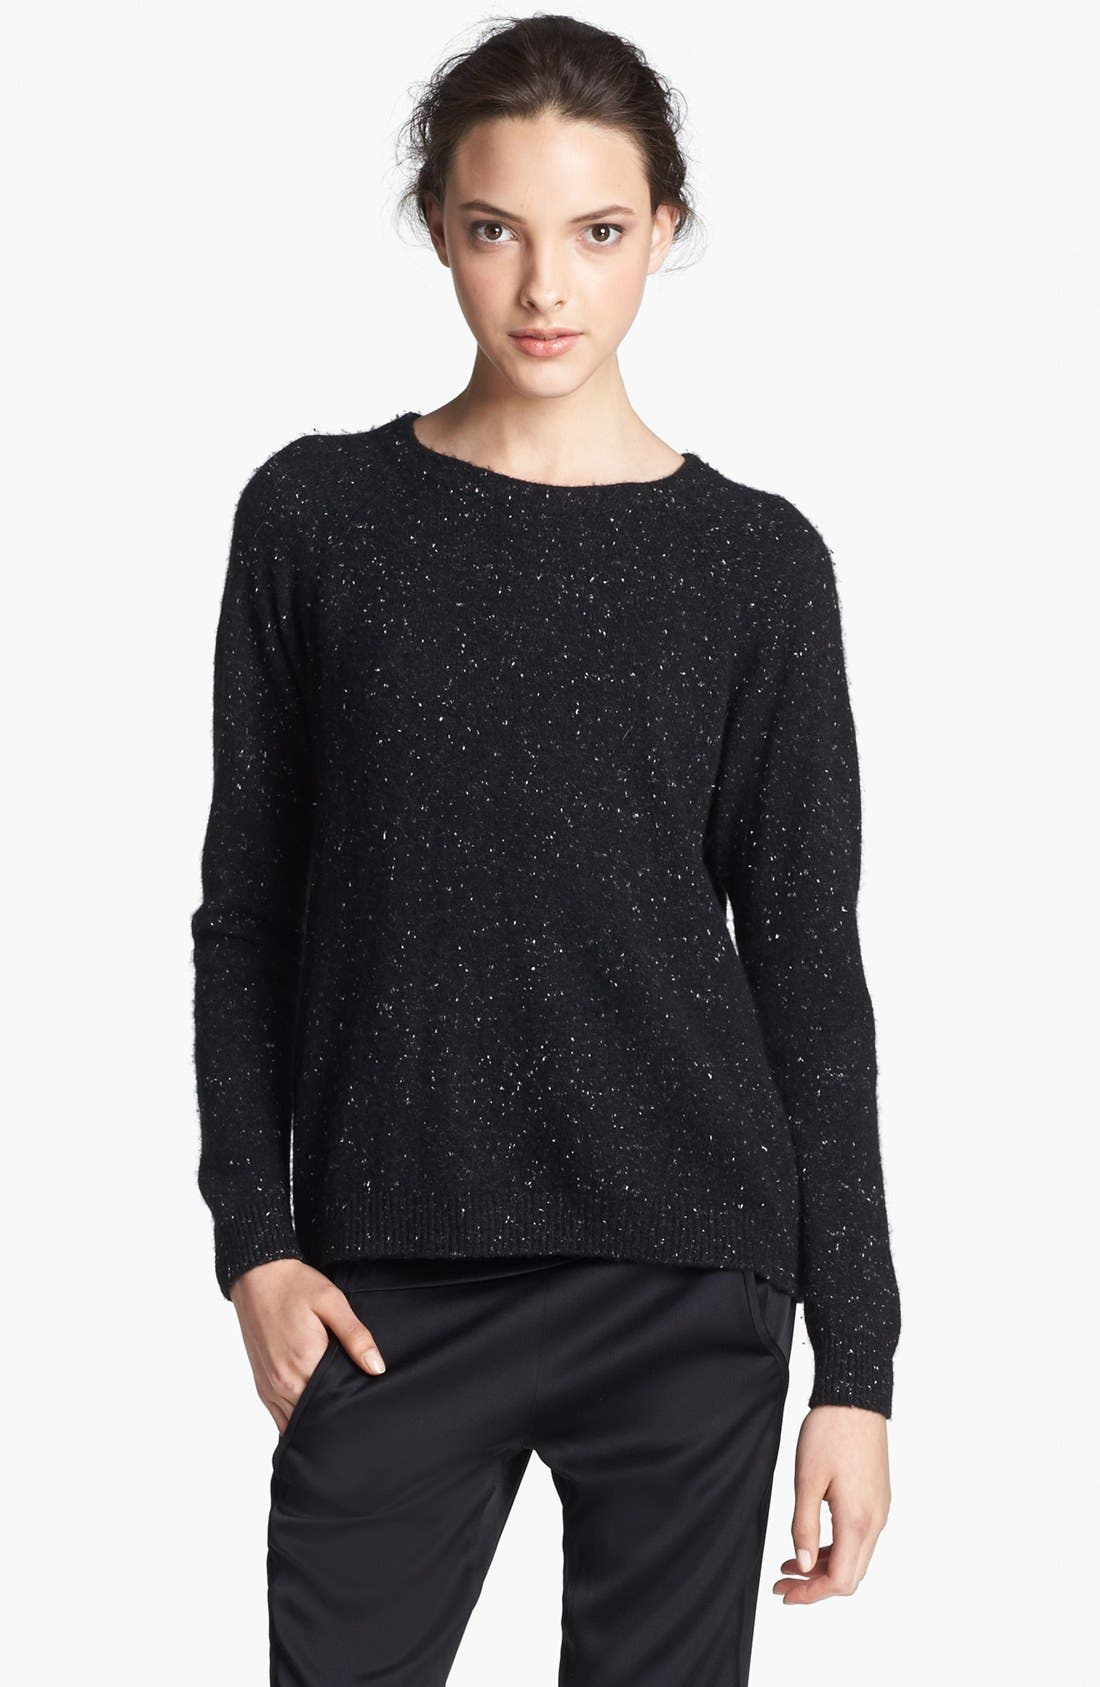 Main Image - Alexander Wang Donegal Tweed Knit Sweater